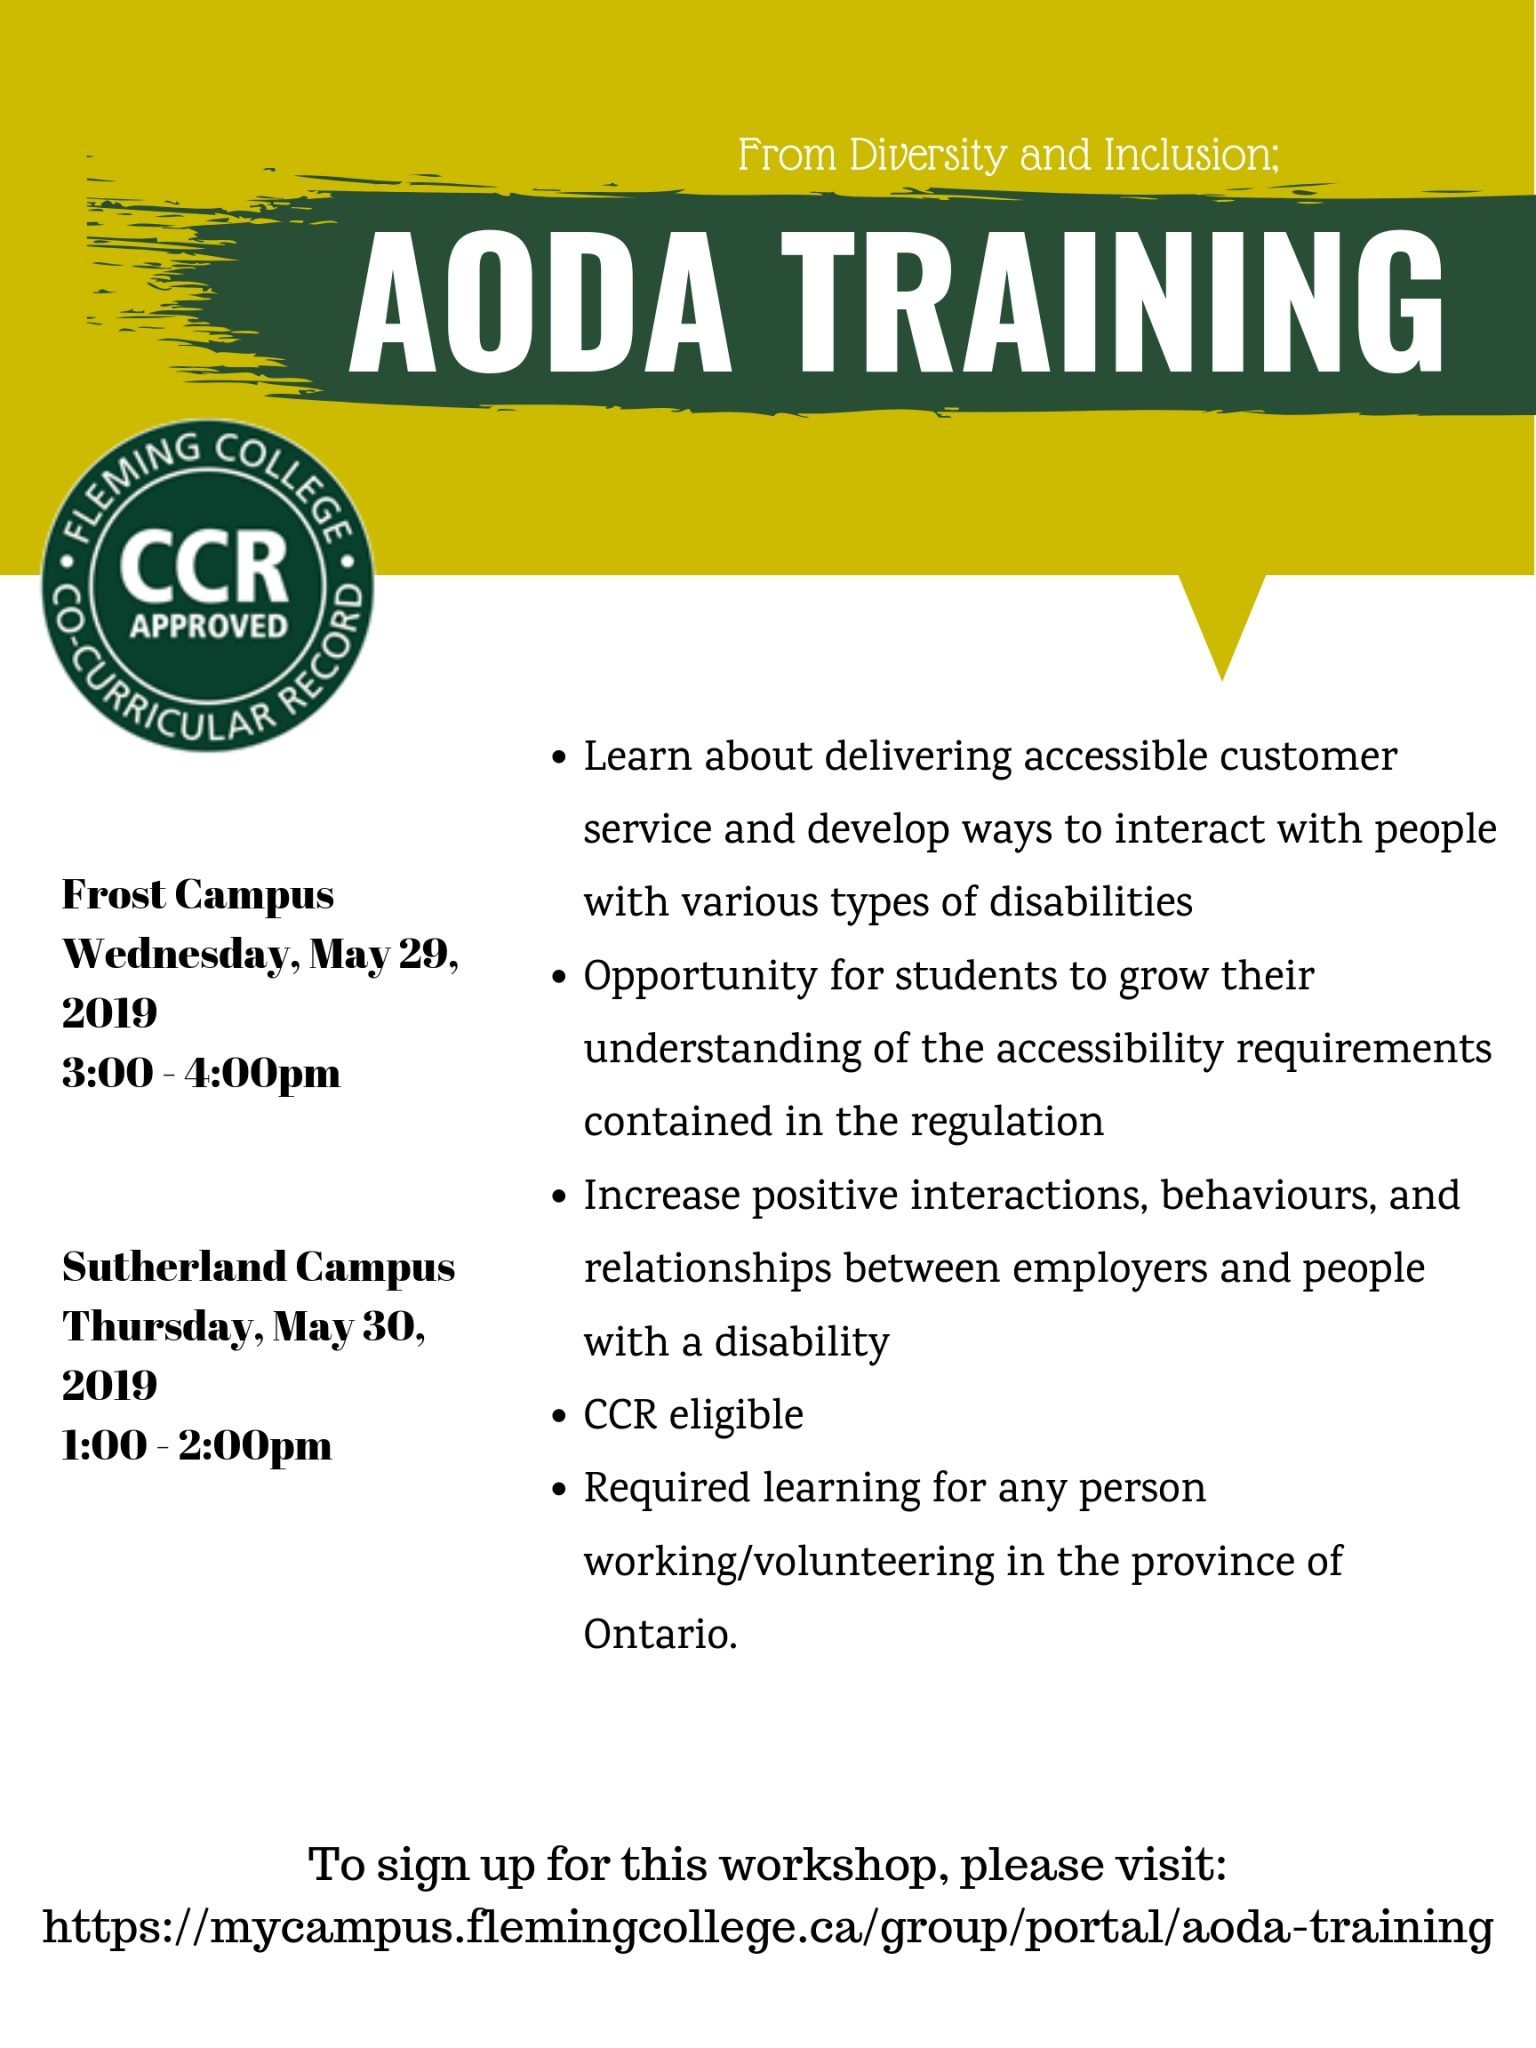 AODA Training to be offered at Fleming College Sutherland and Frost Campuses